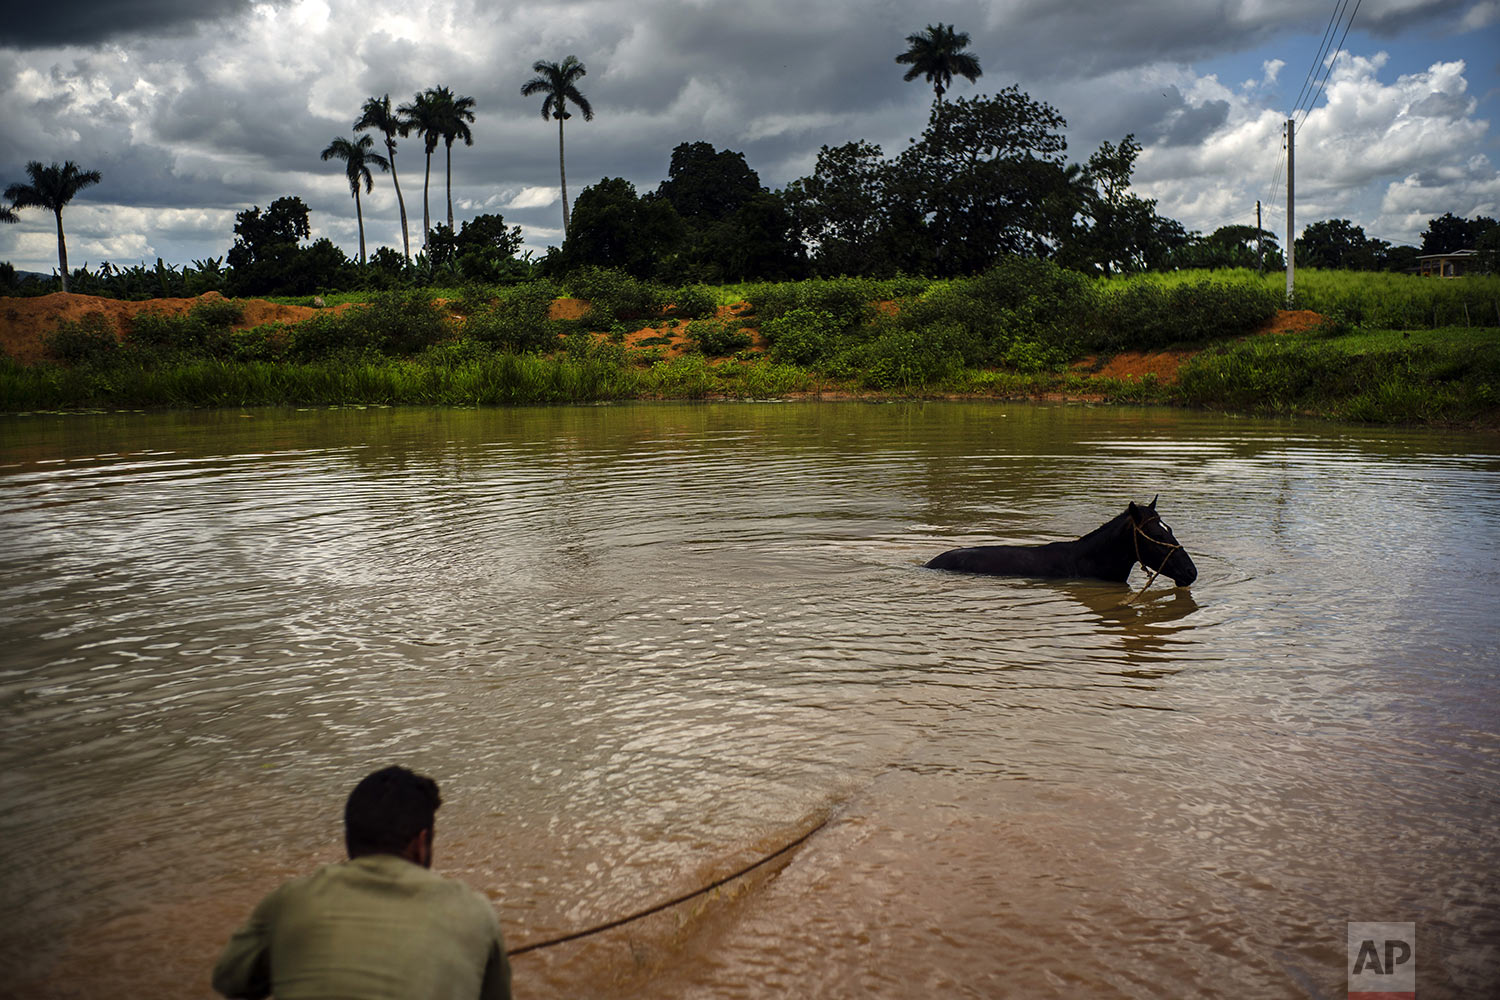 In this Aug. 24, 2019 photo, a man cools down his horse in a lagoon in El Infernal neighborhood in San Andres in the province of Pinar del Río, Cuba. (AP Photo/Ramon Espinosa)